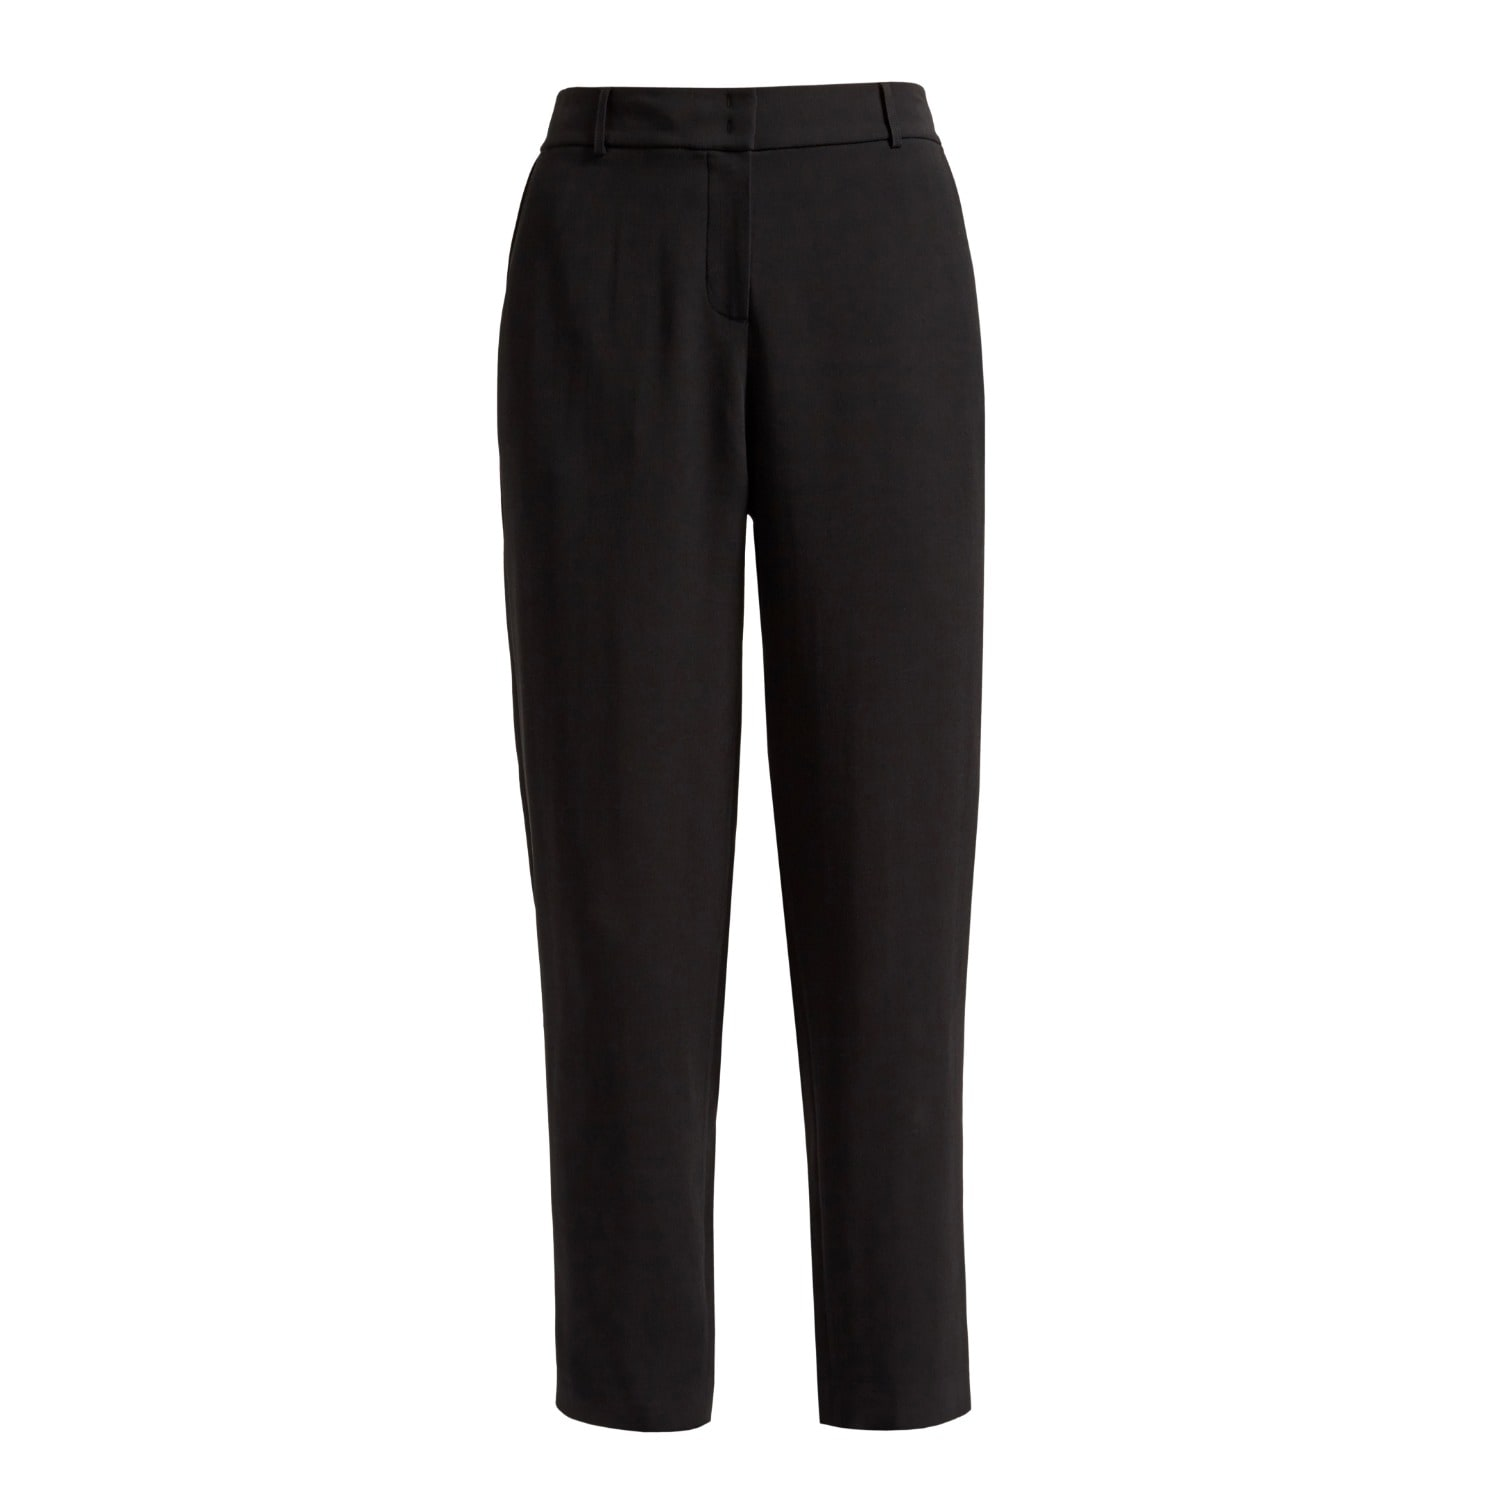 WtR - Sonia Black Cady Tapered Trousers